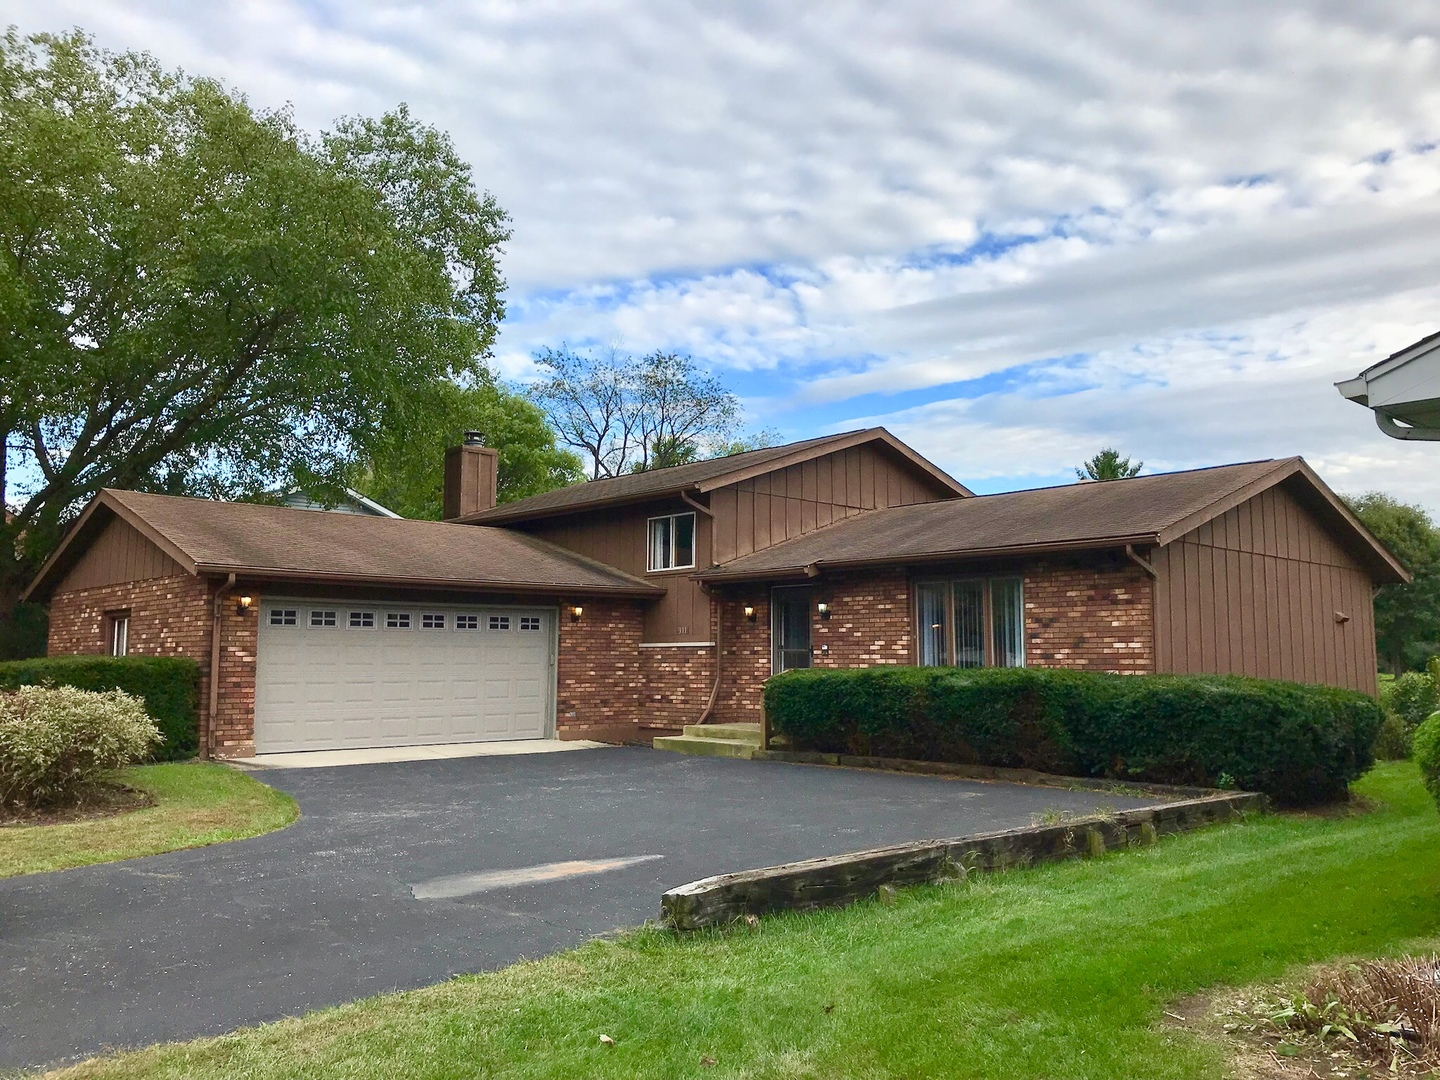 Photo for 311 Pearl Street, Cary, IL 60013 (MLS # 10531911)